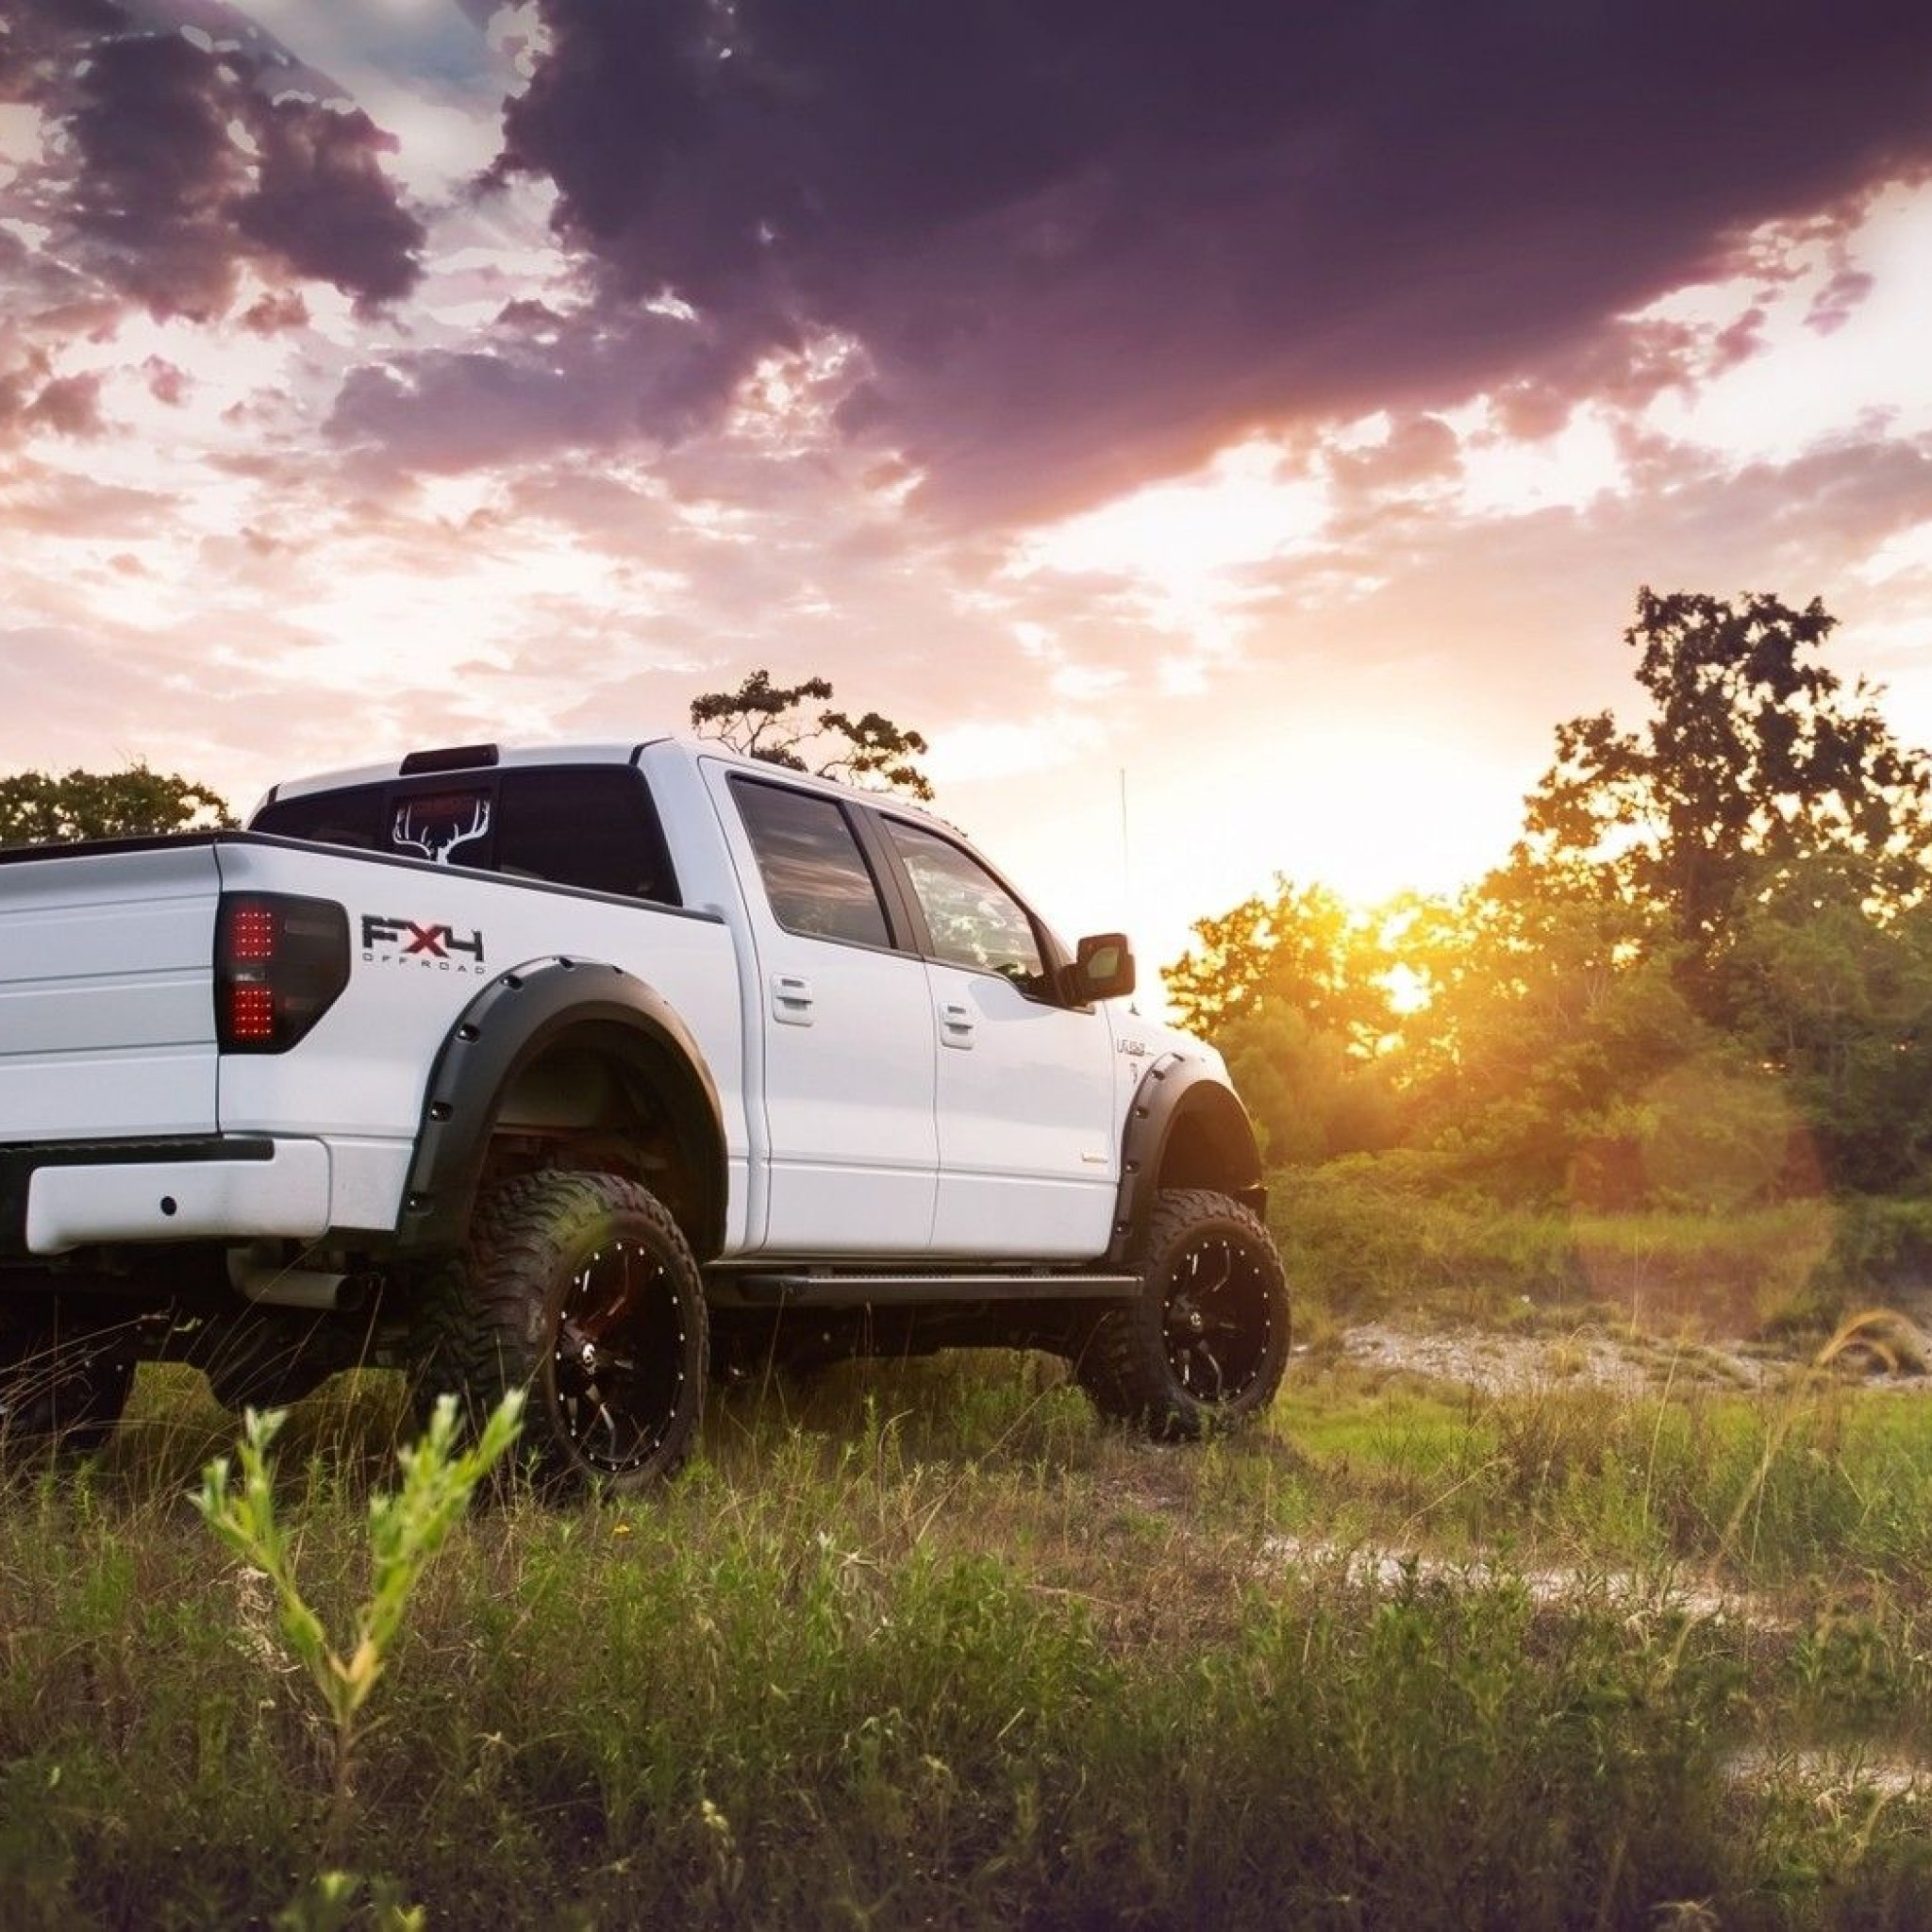 Ford Powerstroke Wallpaper 45 images 2048x2048